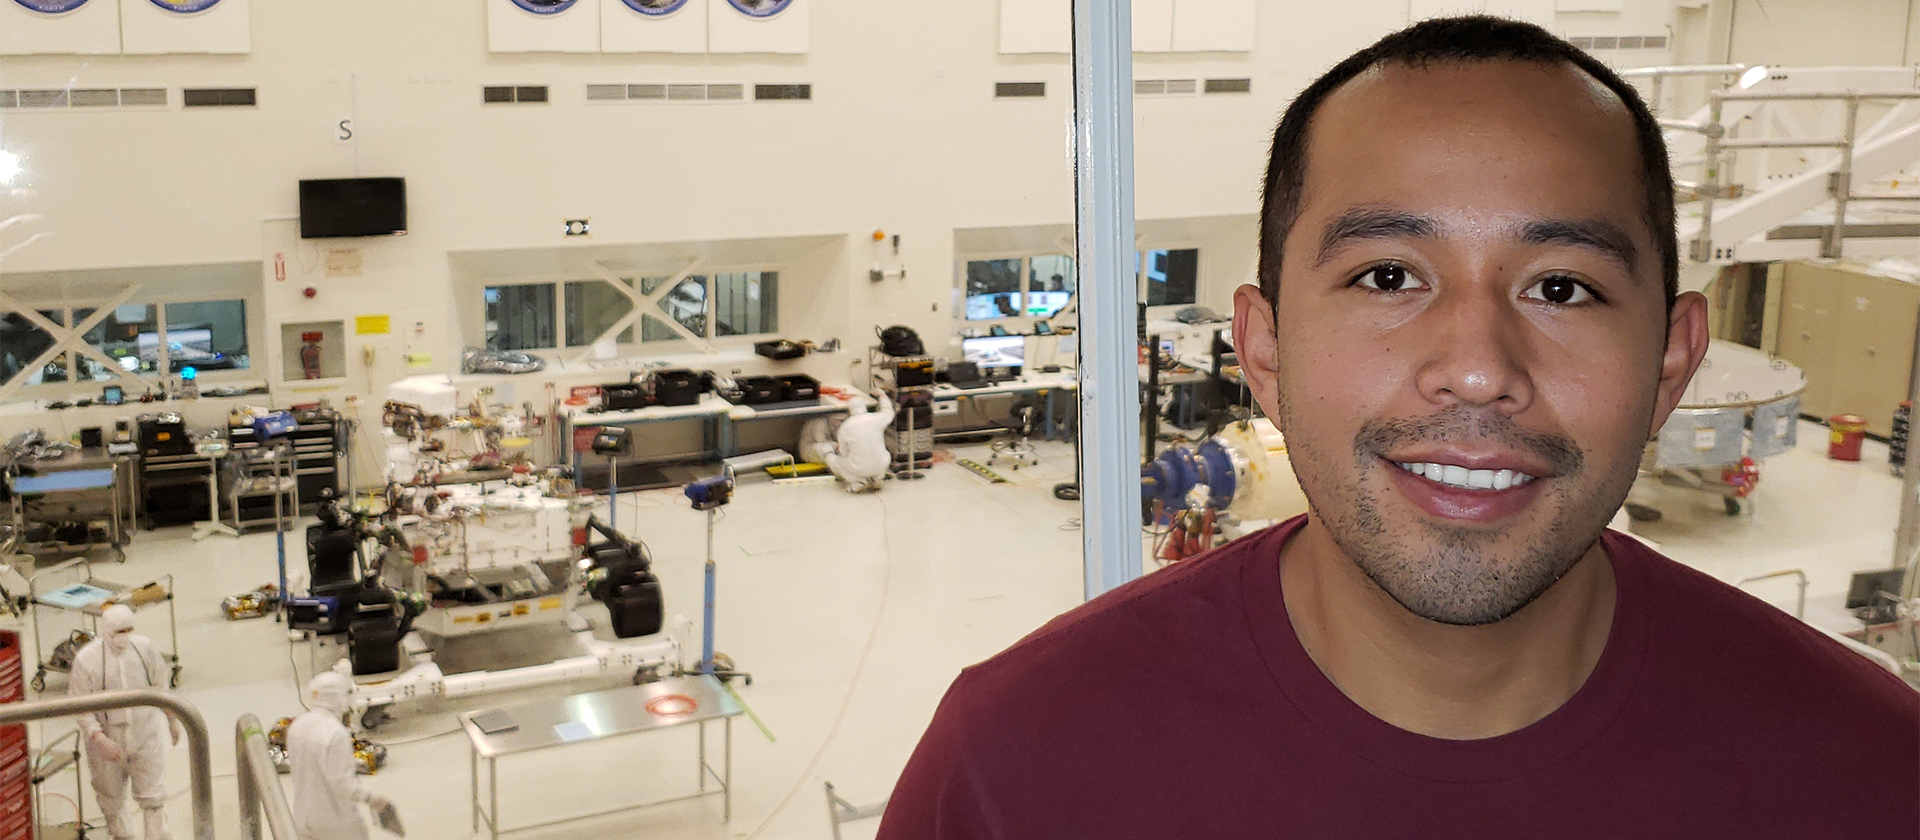 Luis Dominquez in a lab at JPL.